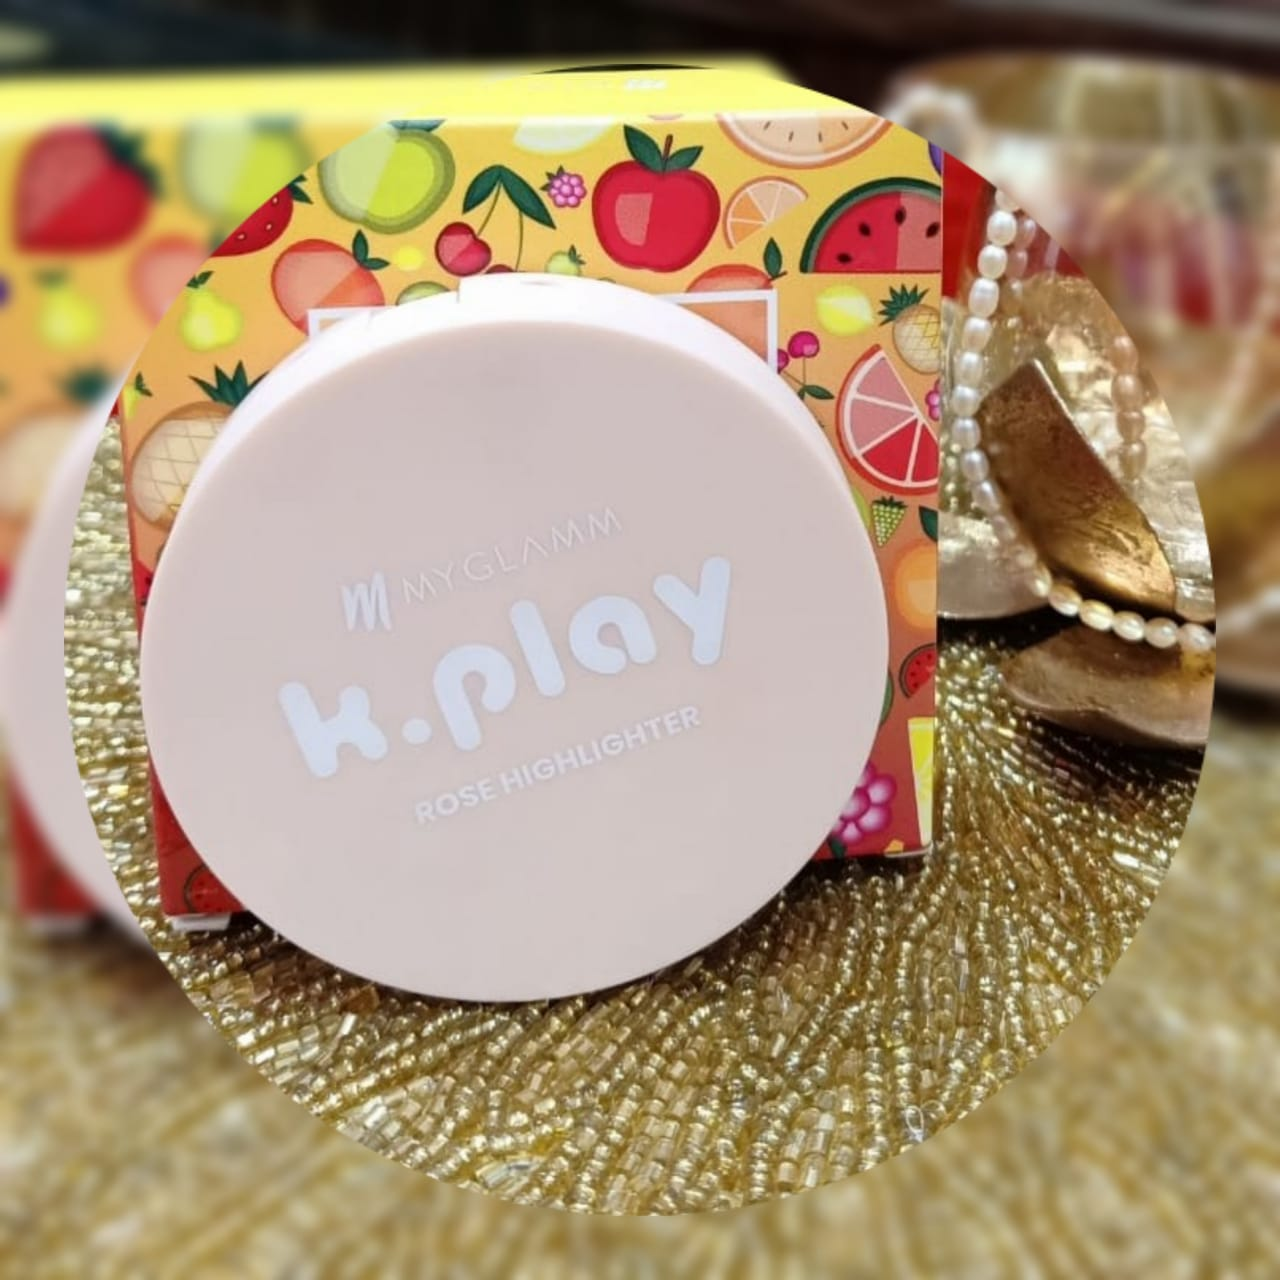 MyGlamm K.PLAY FLAVOURED HIGHLIGHTER – PINK ROSE-Highlighter with natural glow-By swatisingh-2